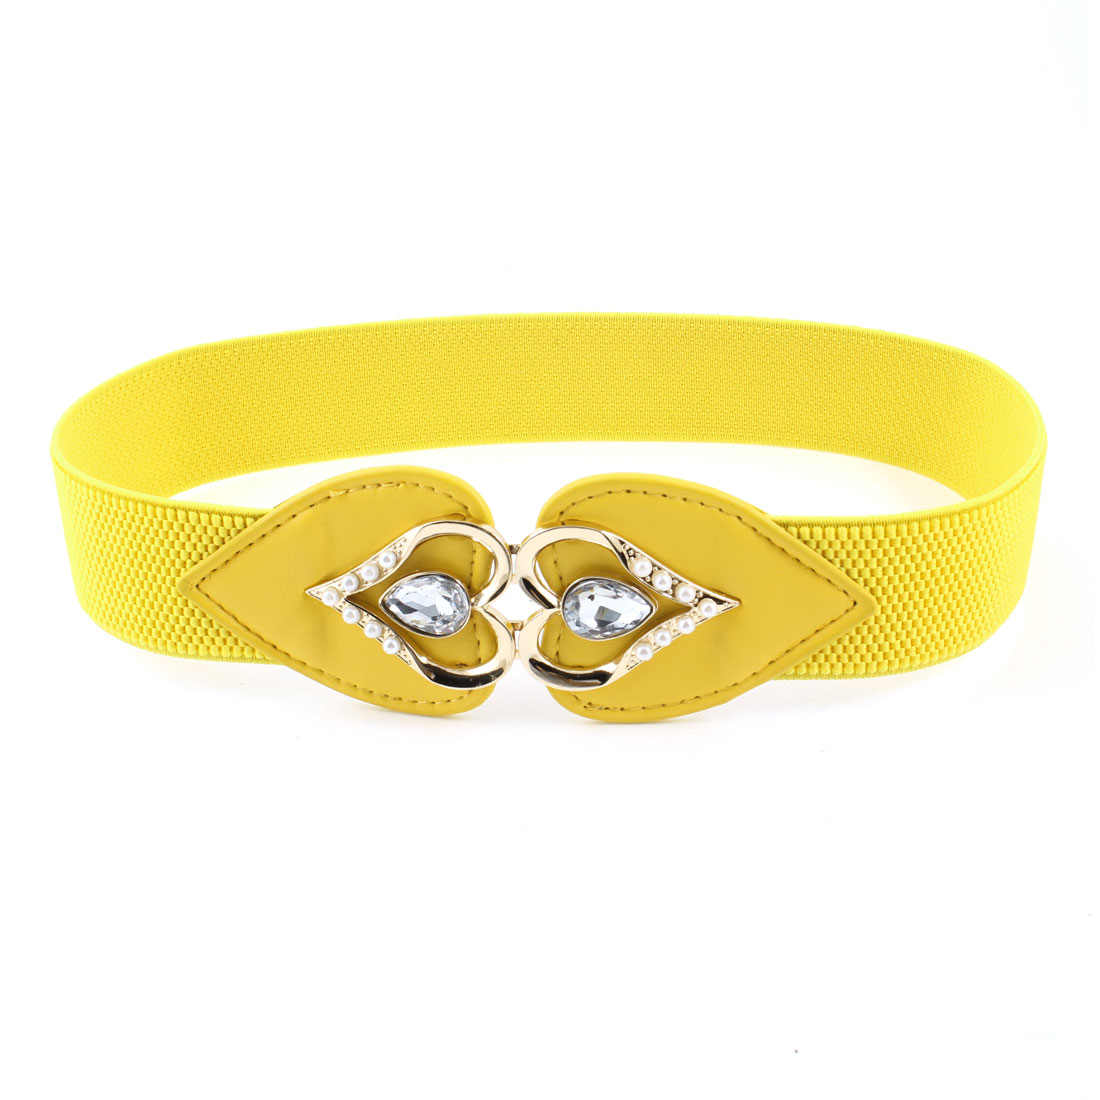 Lady Plastic Crystal Decor Interlocking Buckle Elastic Yellow Elastic Cinch Belt